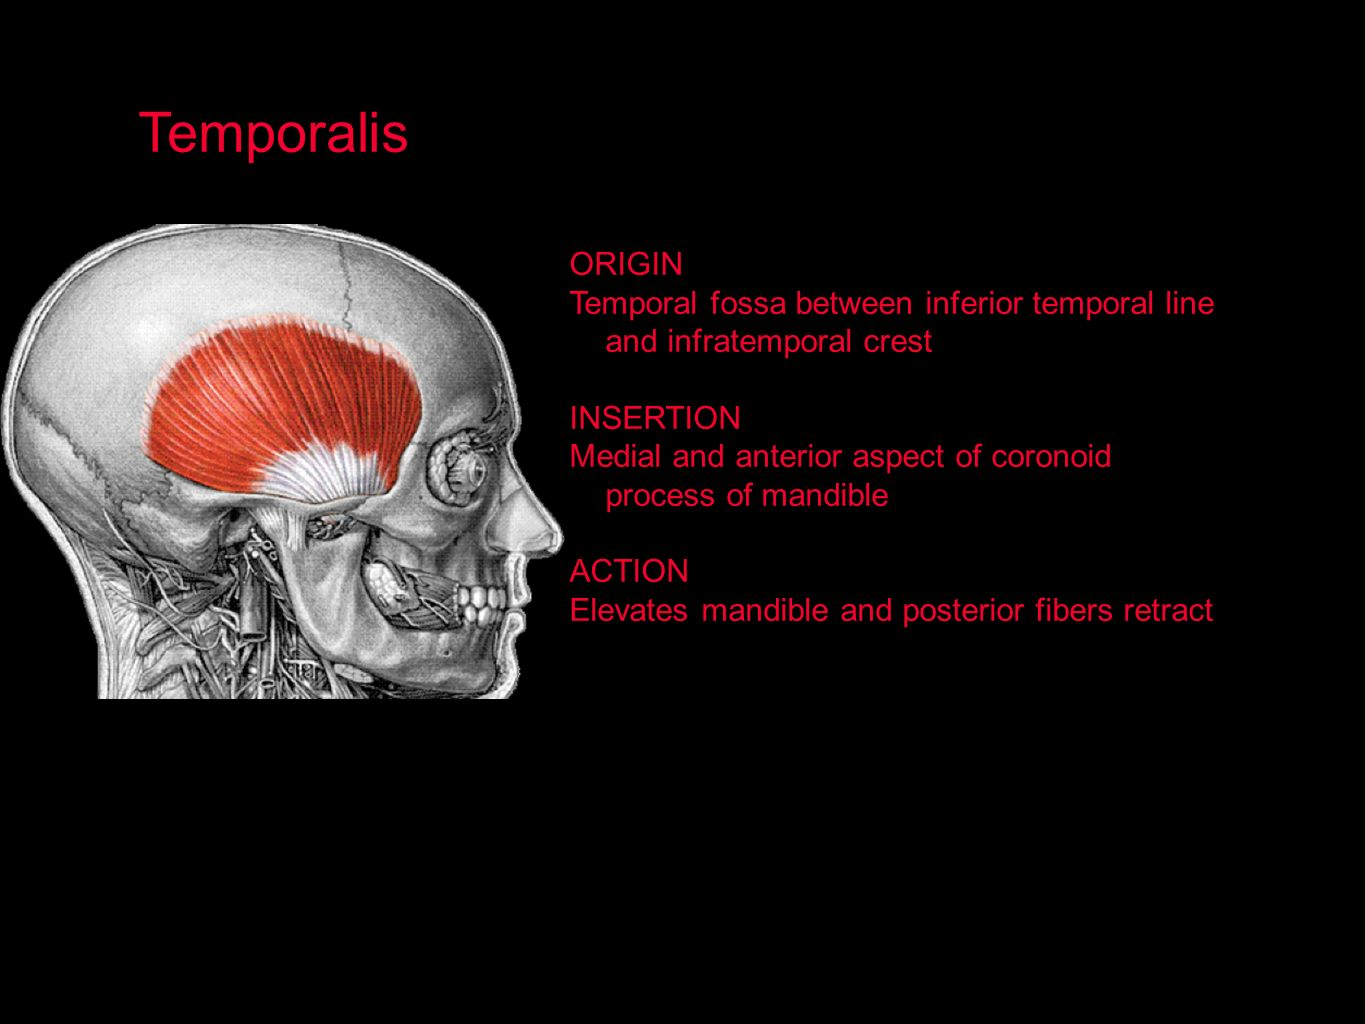 Temporalis ORIGIN. Temporal fossa between inferior temporal line and infratemporal crest. INSERTION.